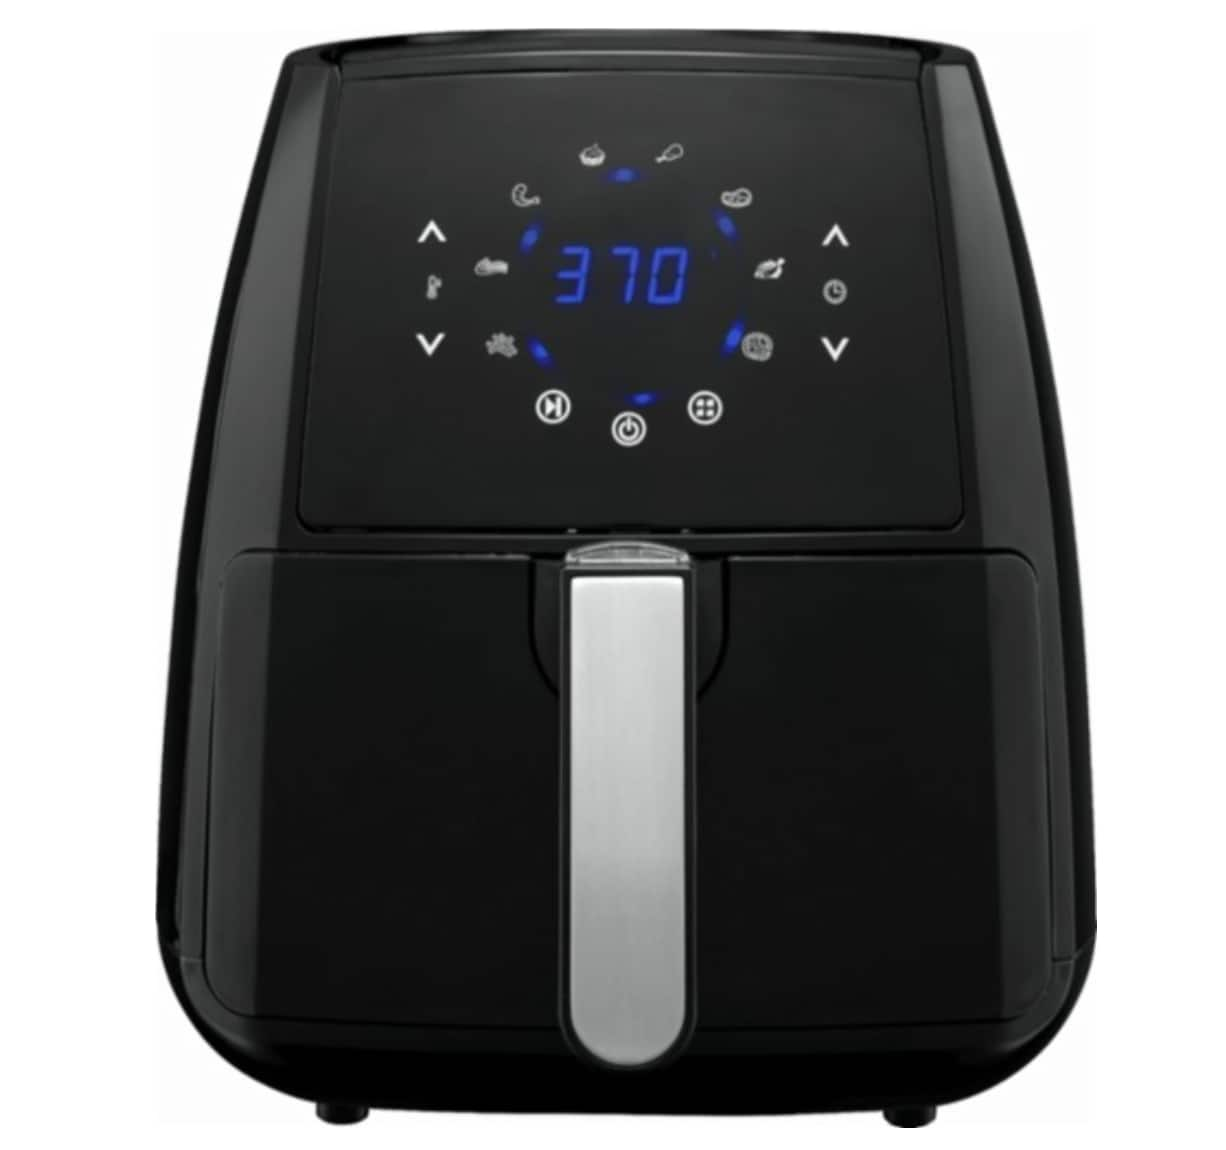 Gourmia - 4.5Qt Hot Air Fryer - Black/Silver (today only) $59.99